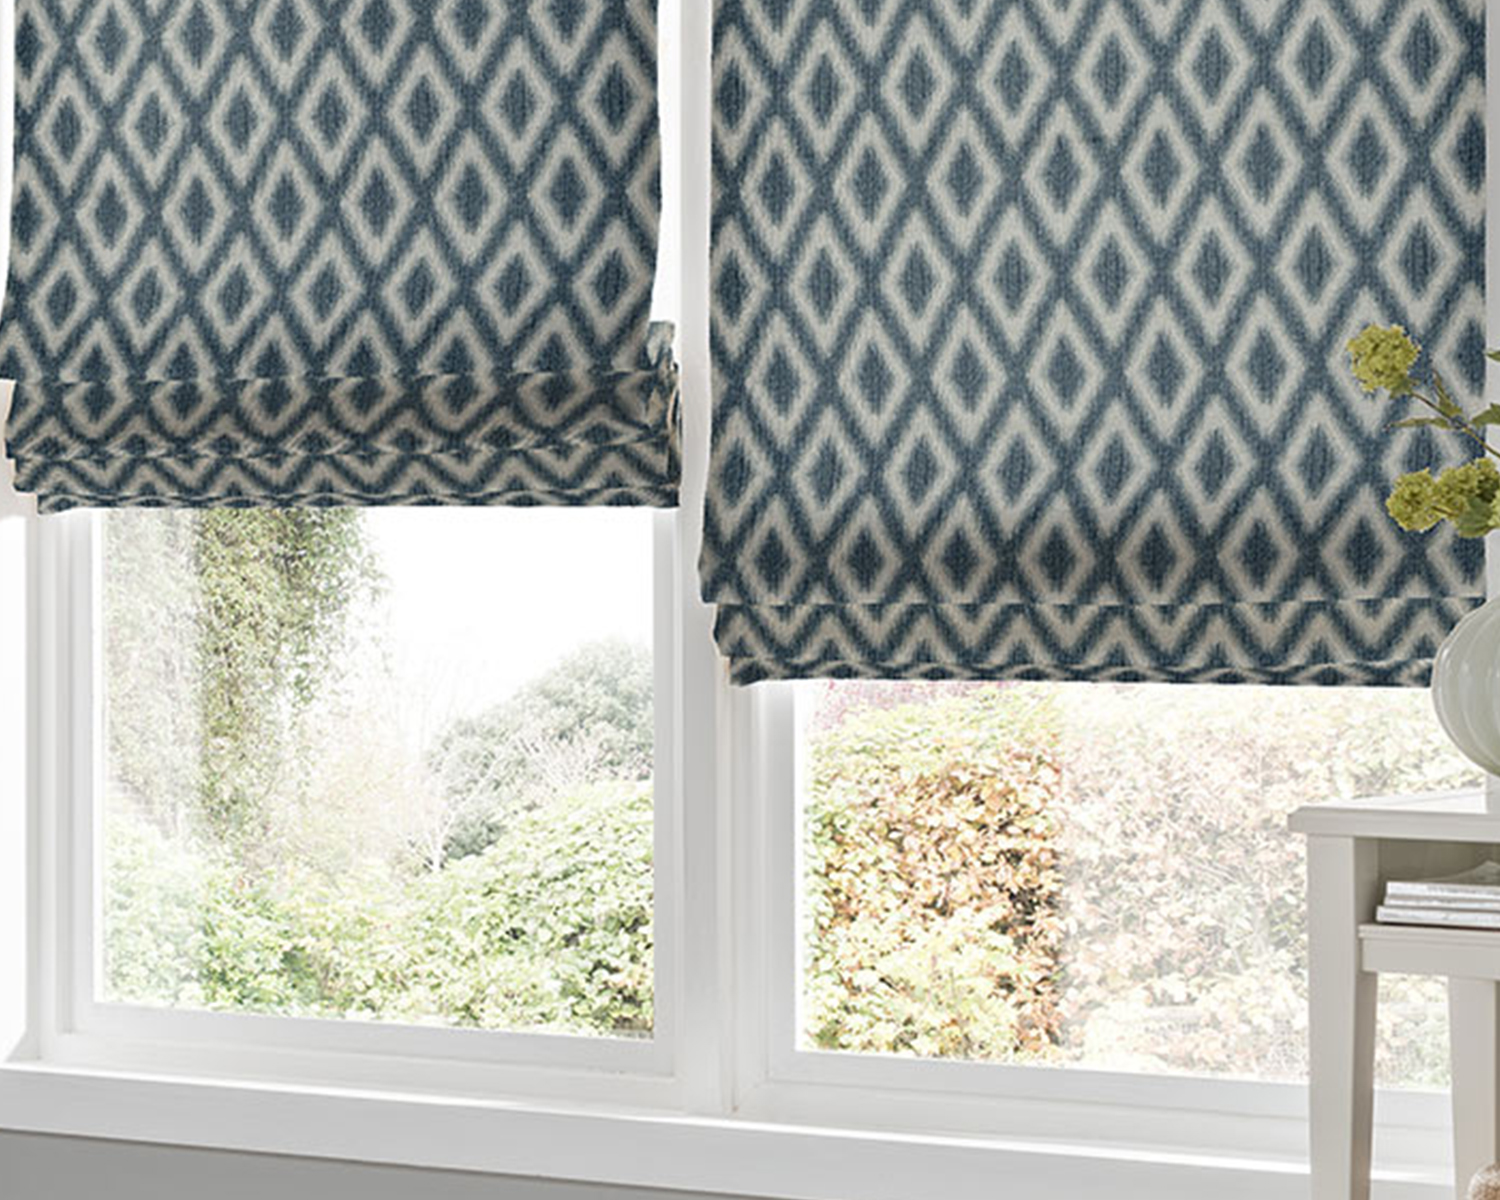 Parallel Roman Blinds